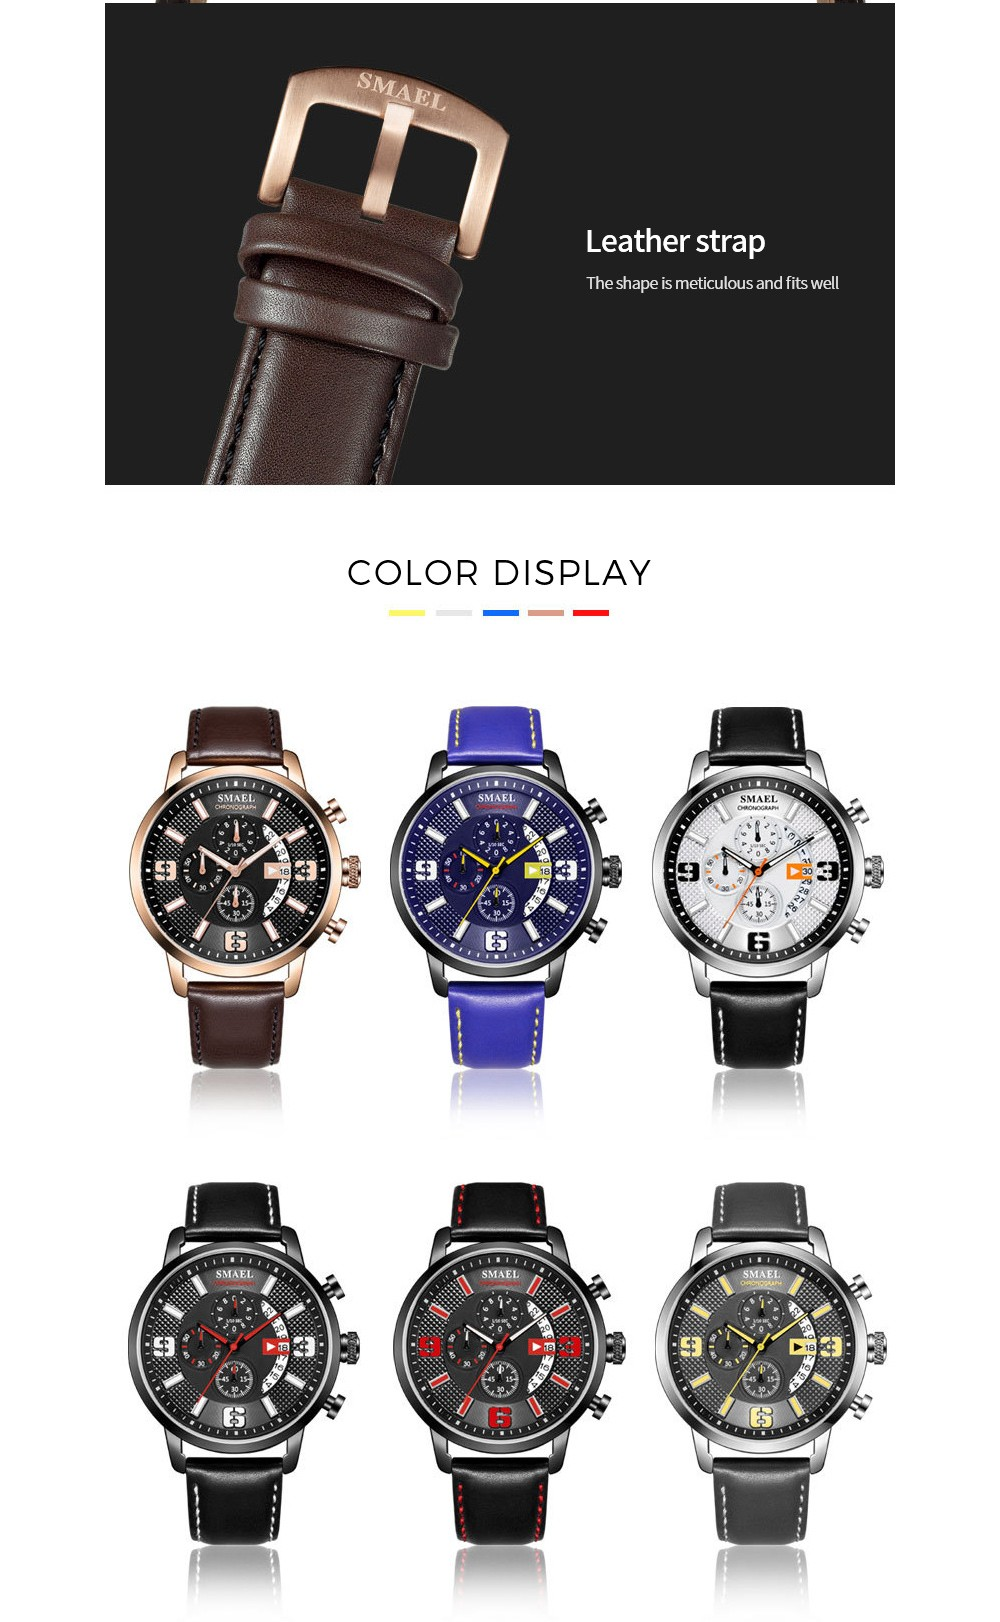 SMAEL Leather Waterproof Watch color